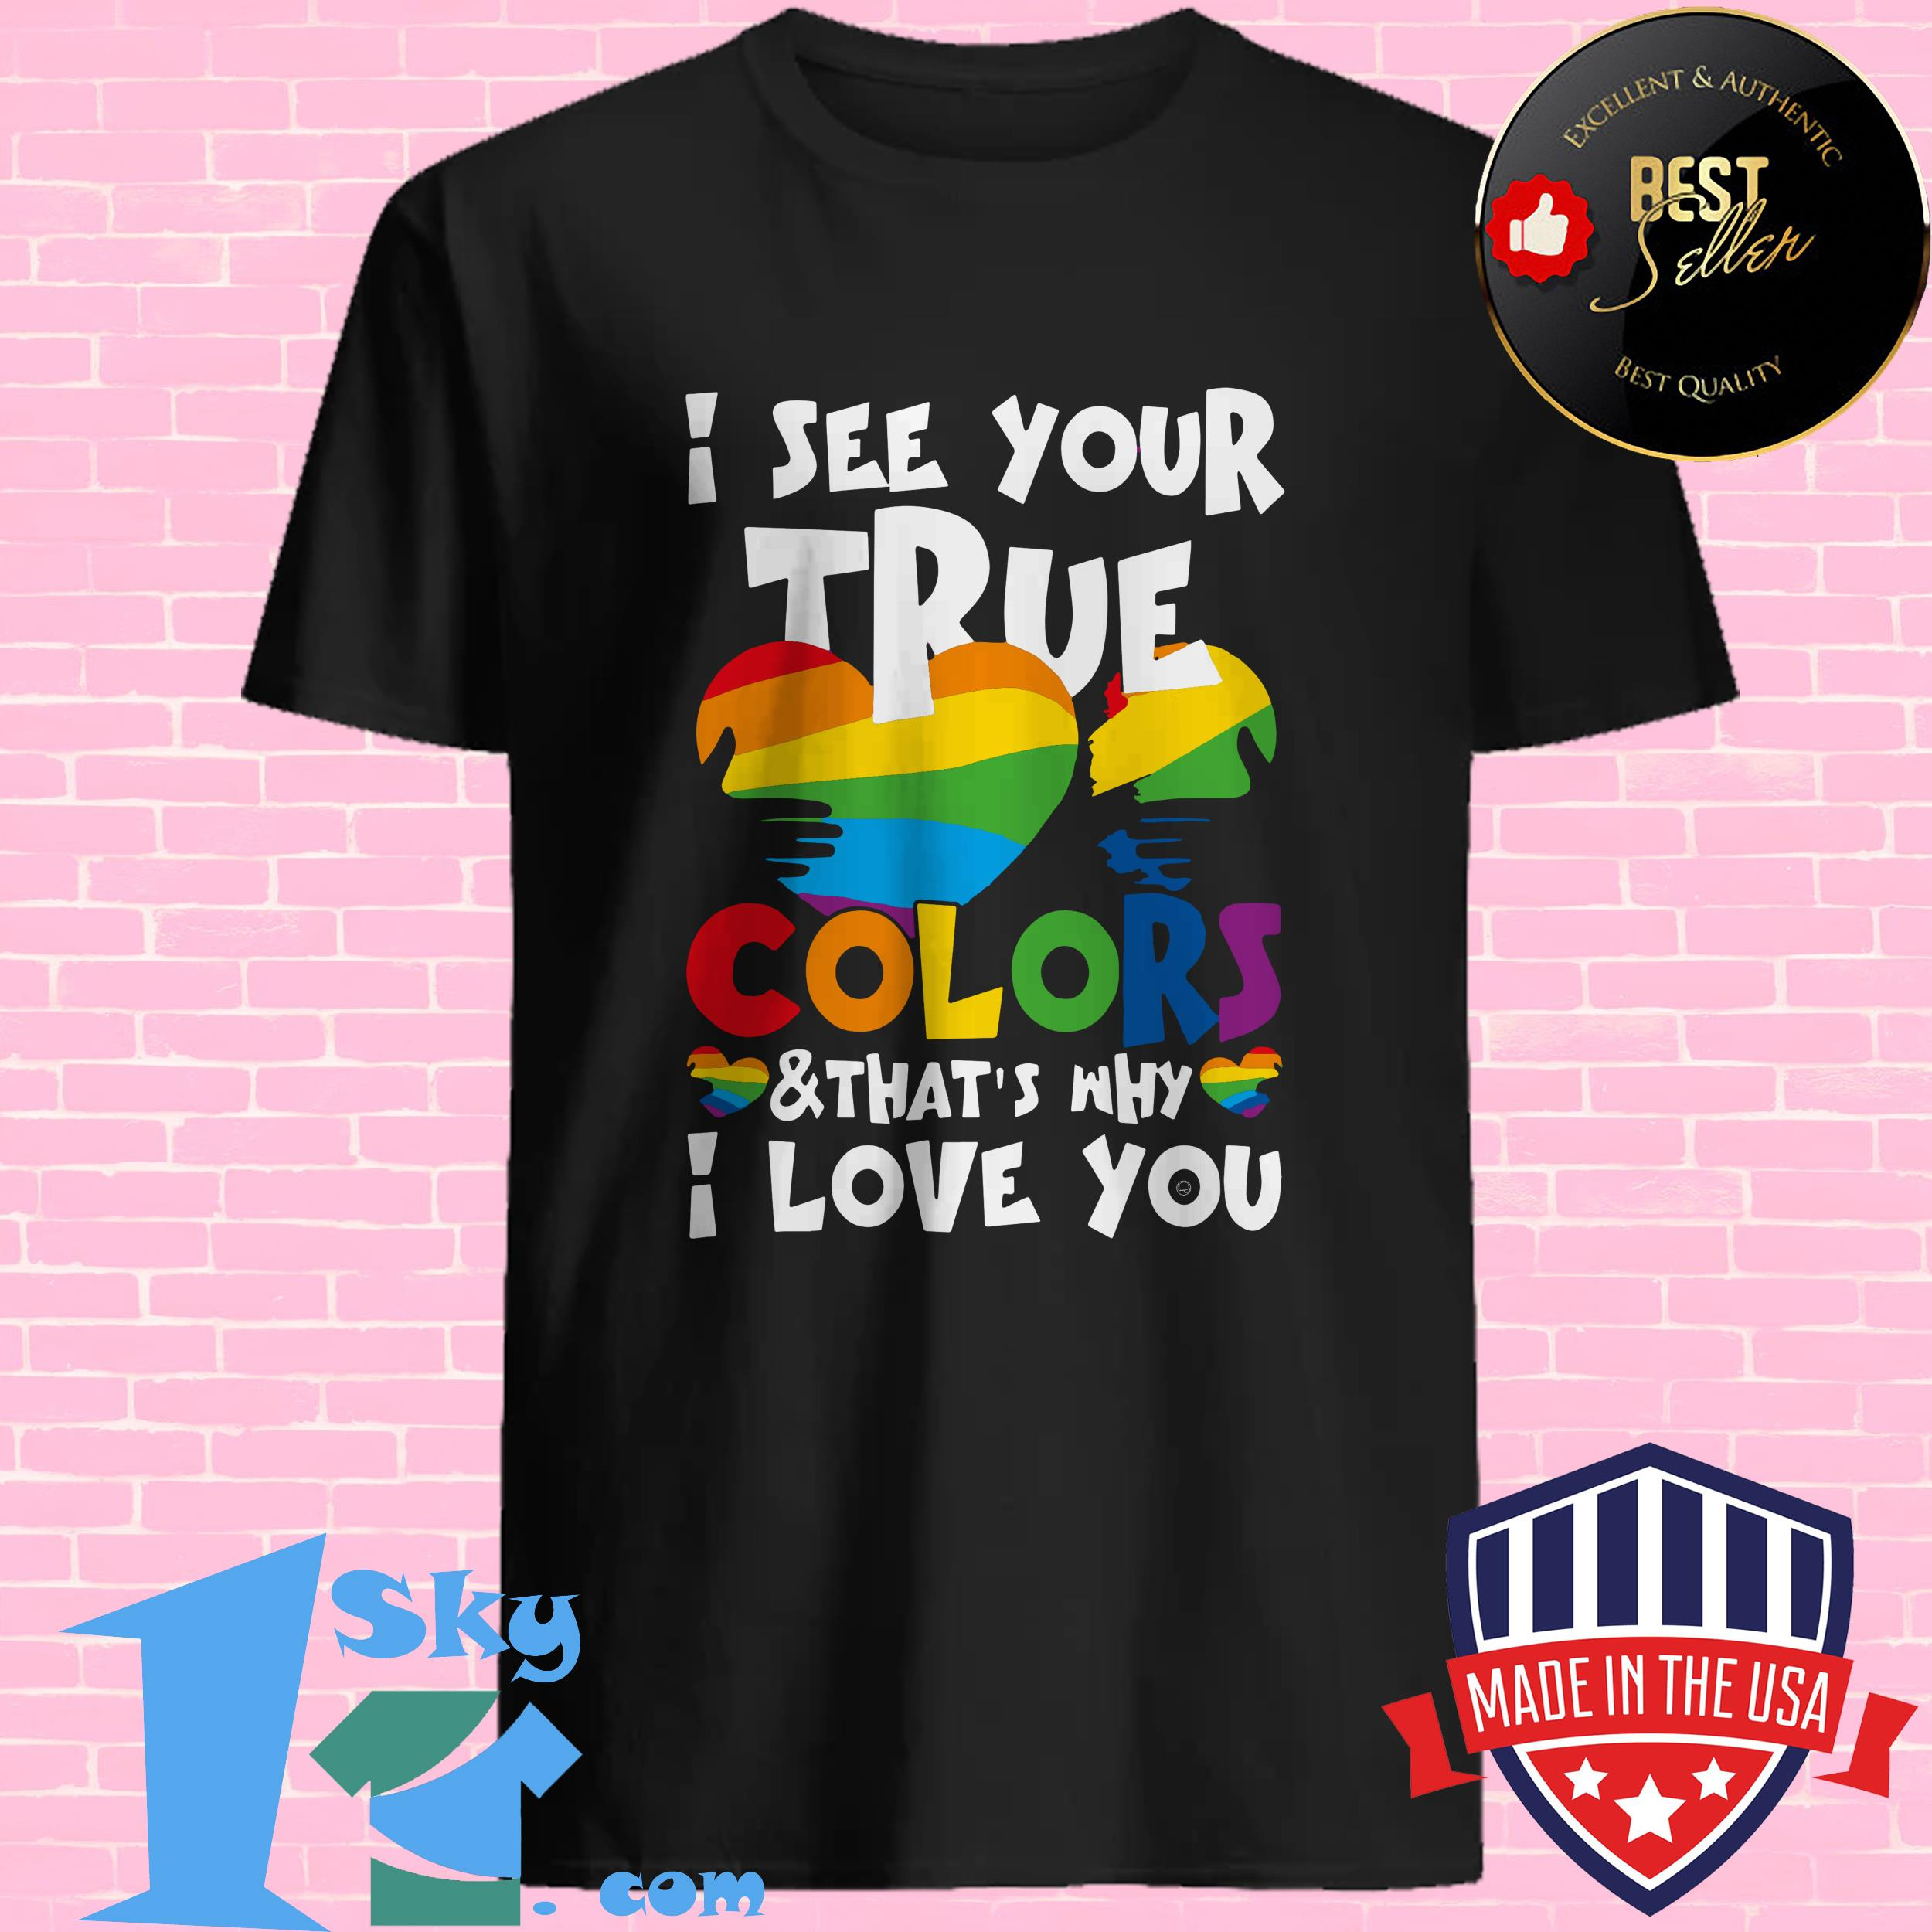 LGBT Pride 2019 I see you true colors that's why I love you shirt